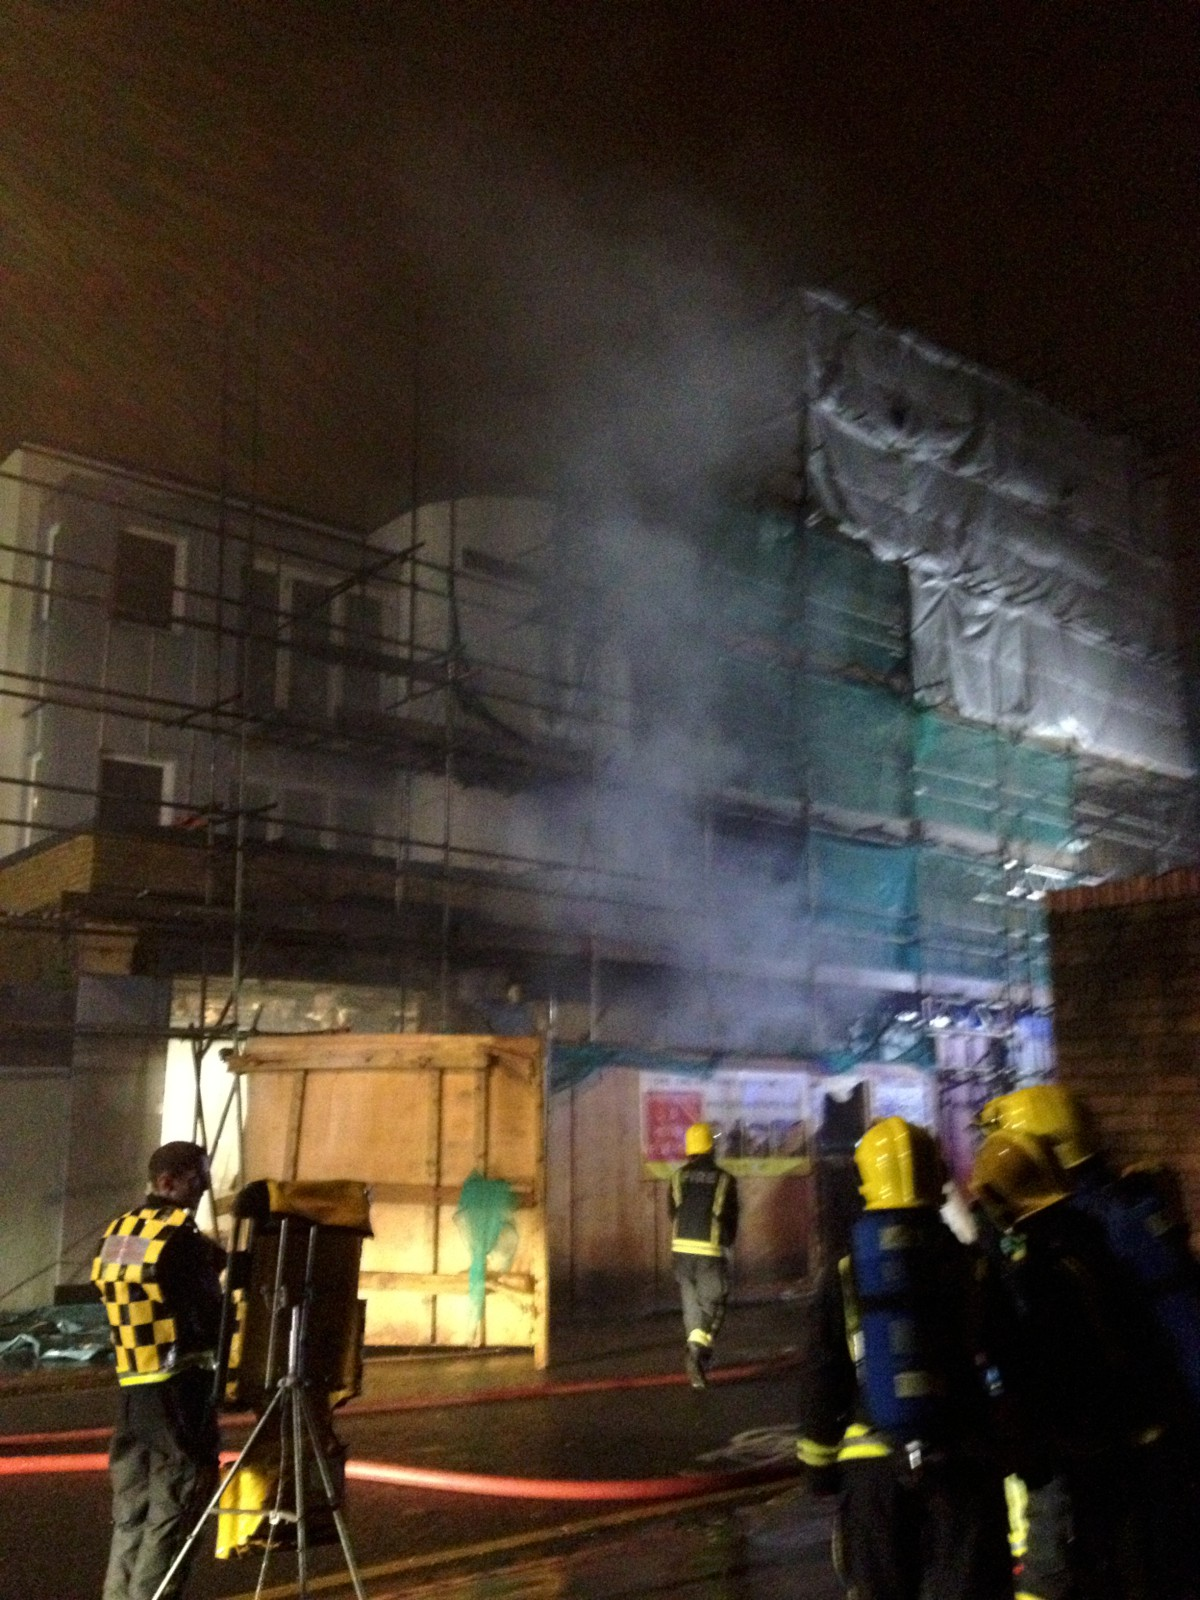 Fire crews managed to stop the fire spreading to flats above.